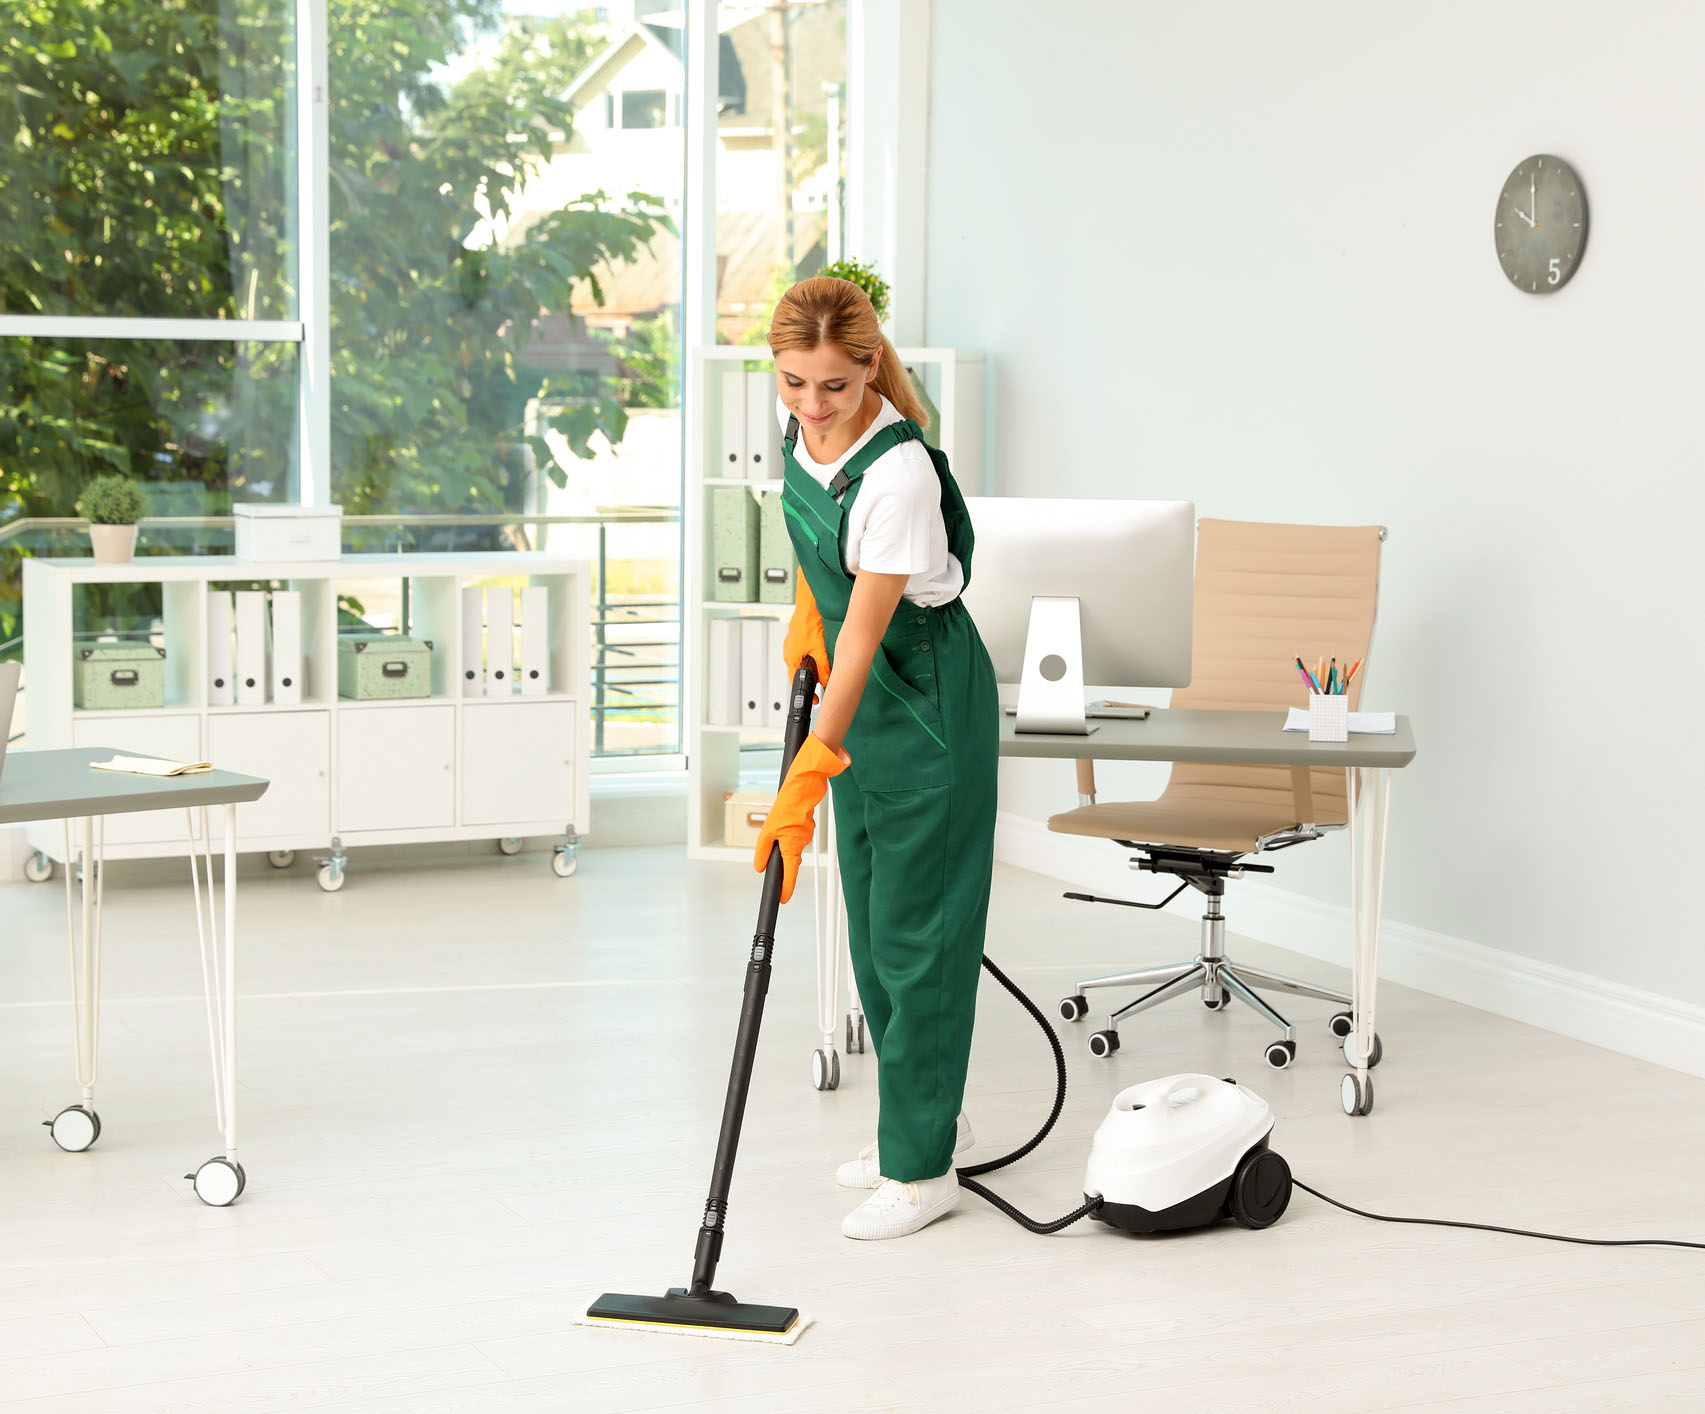 cleaner-1